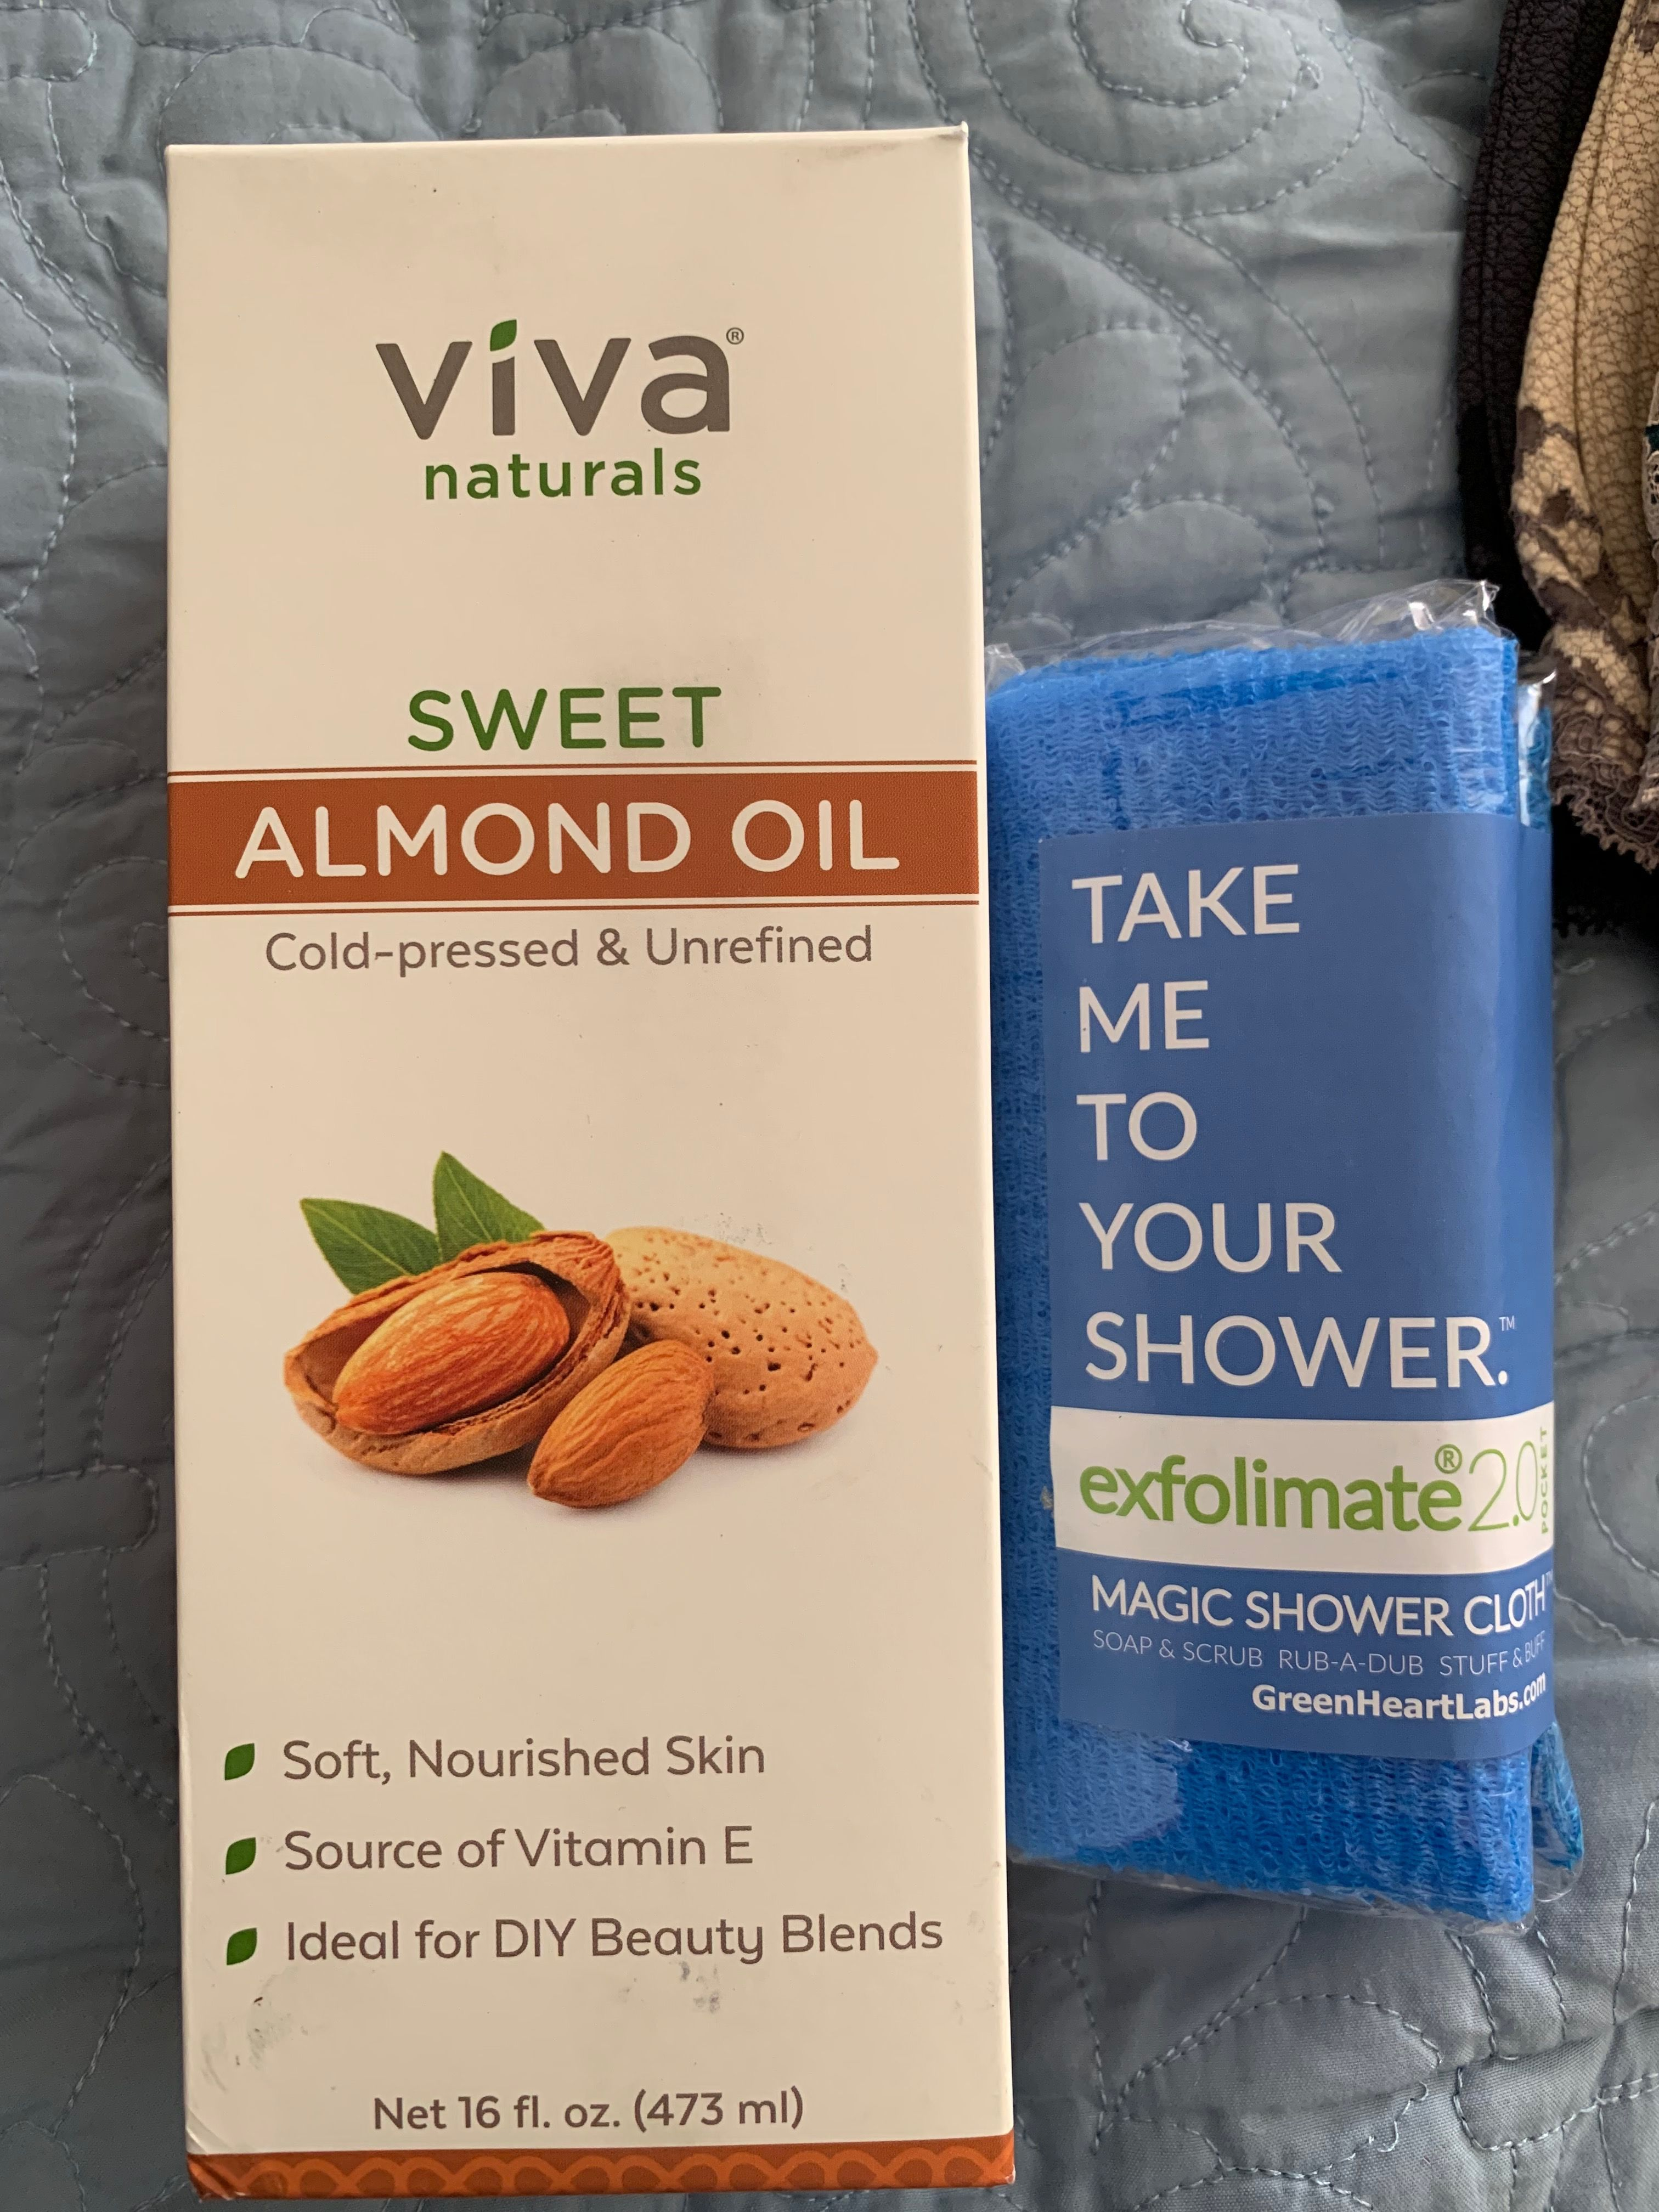 I Use This Almond Oil For Moisturizing My Skin And Hair